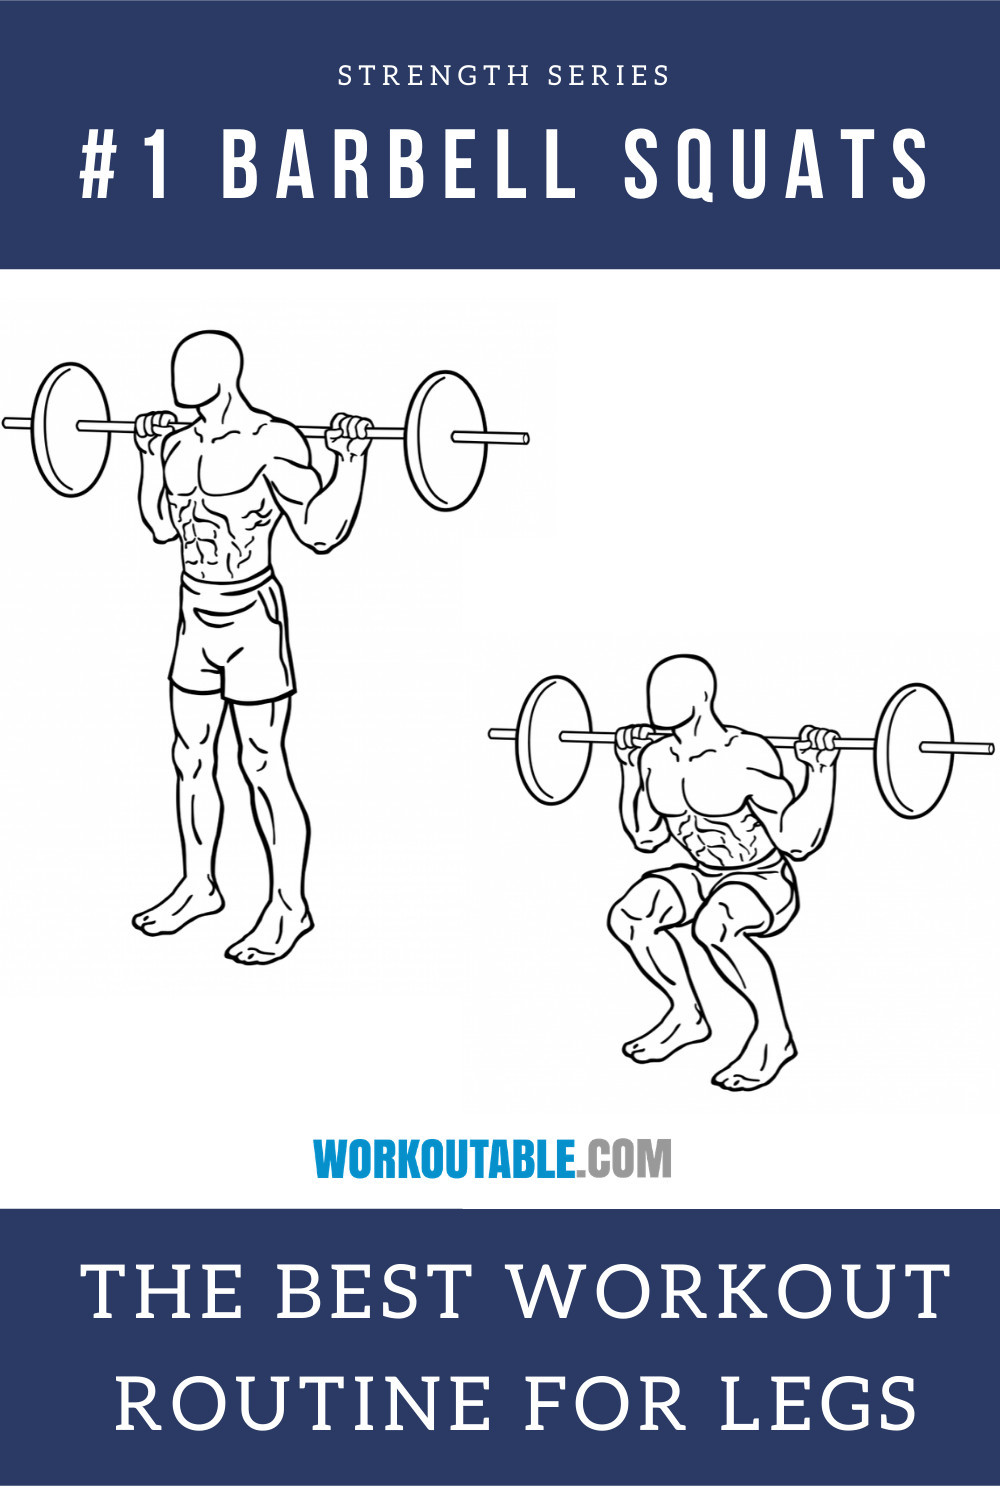 barbell squat best workout routine for legs